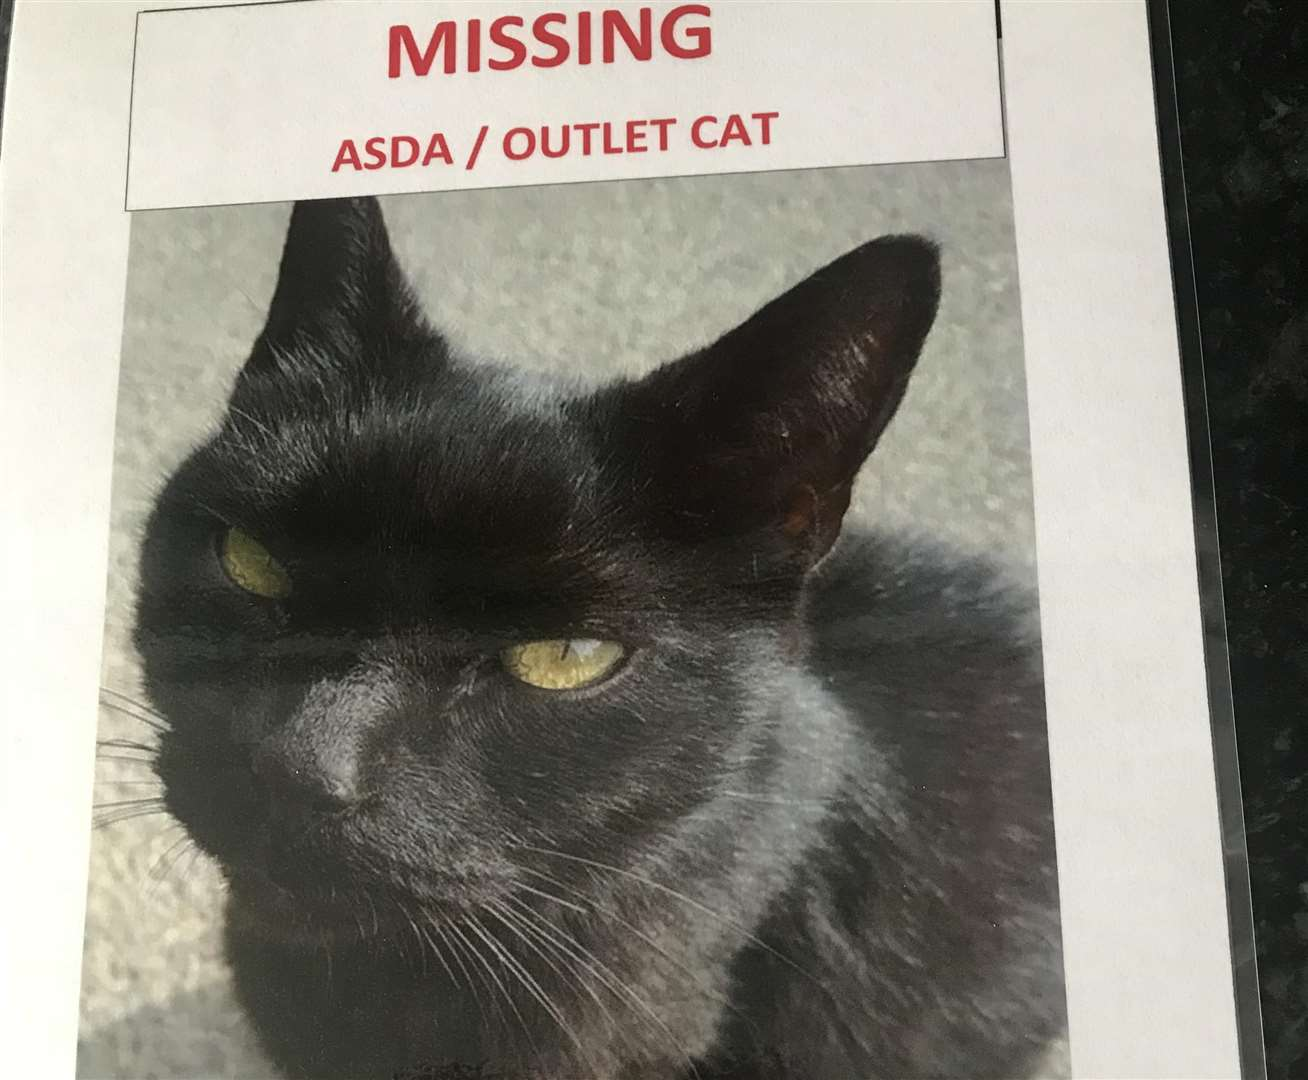 Sammy had been missing for a month before being found